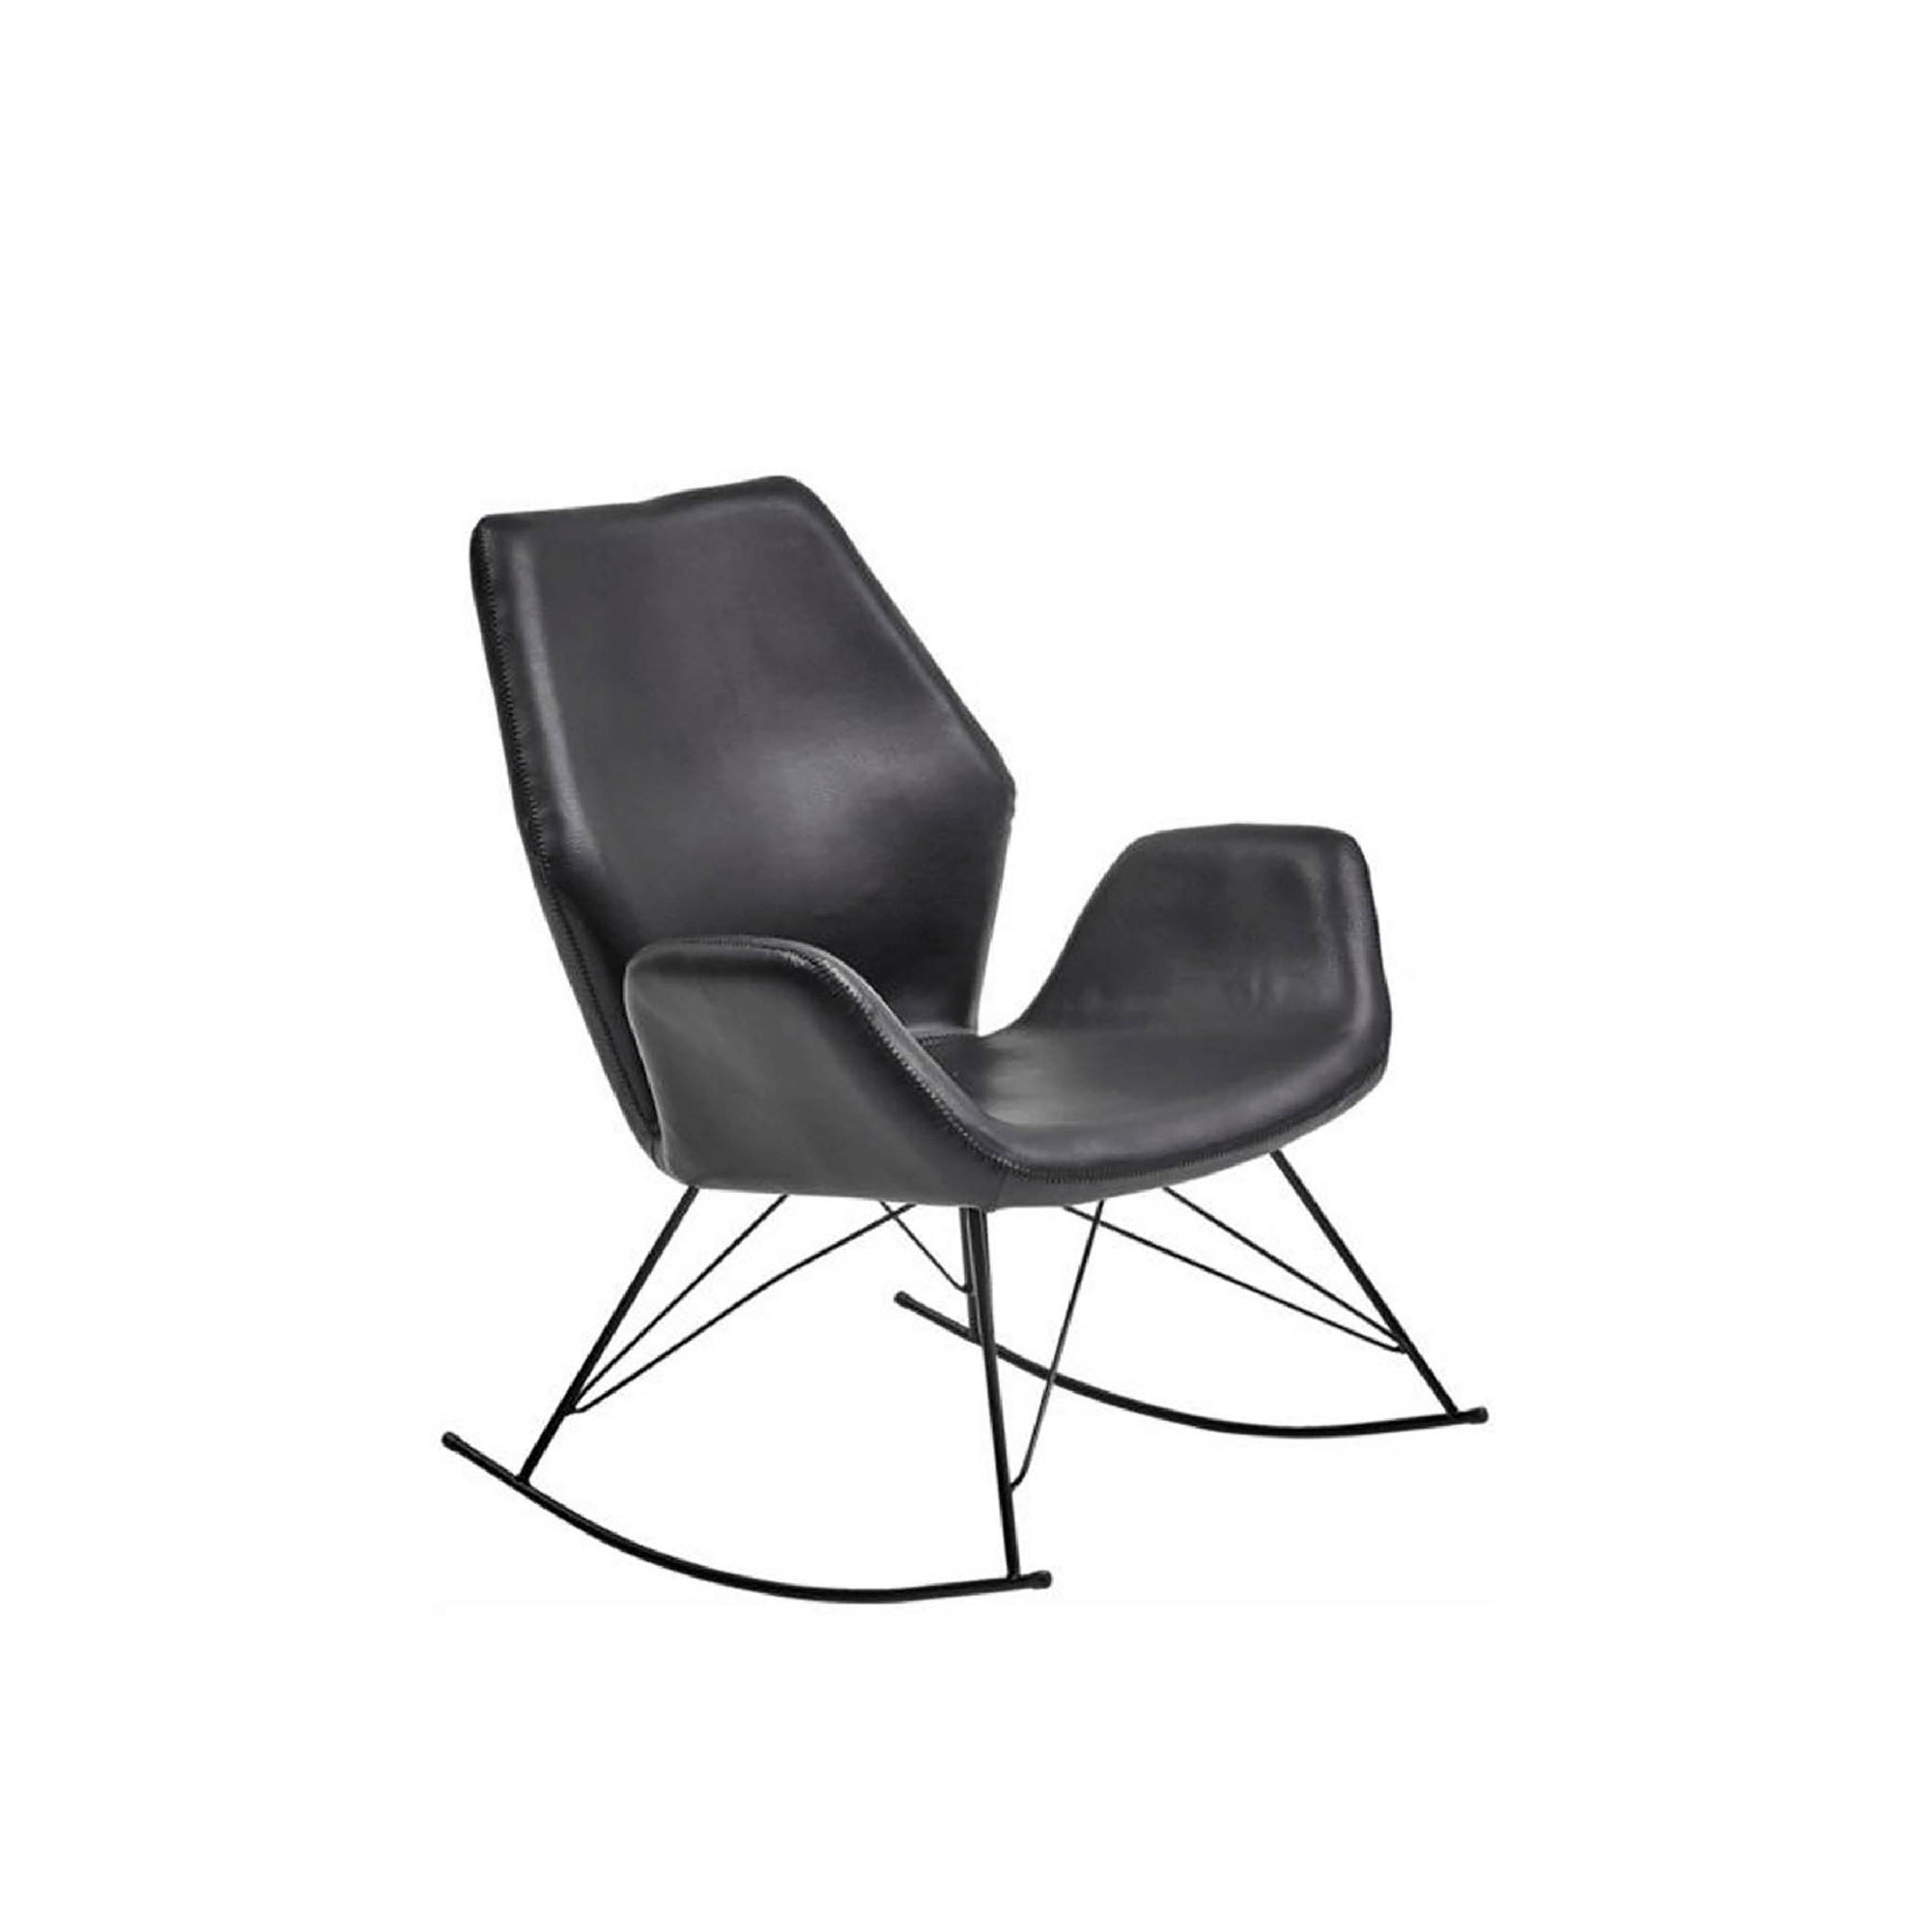 Bryce Accent Rocking Chair - Black  Leather by Roseland Furniture